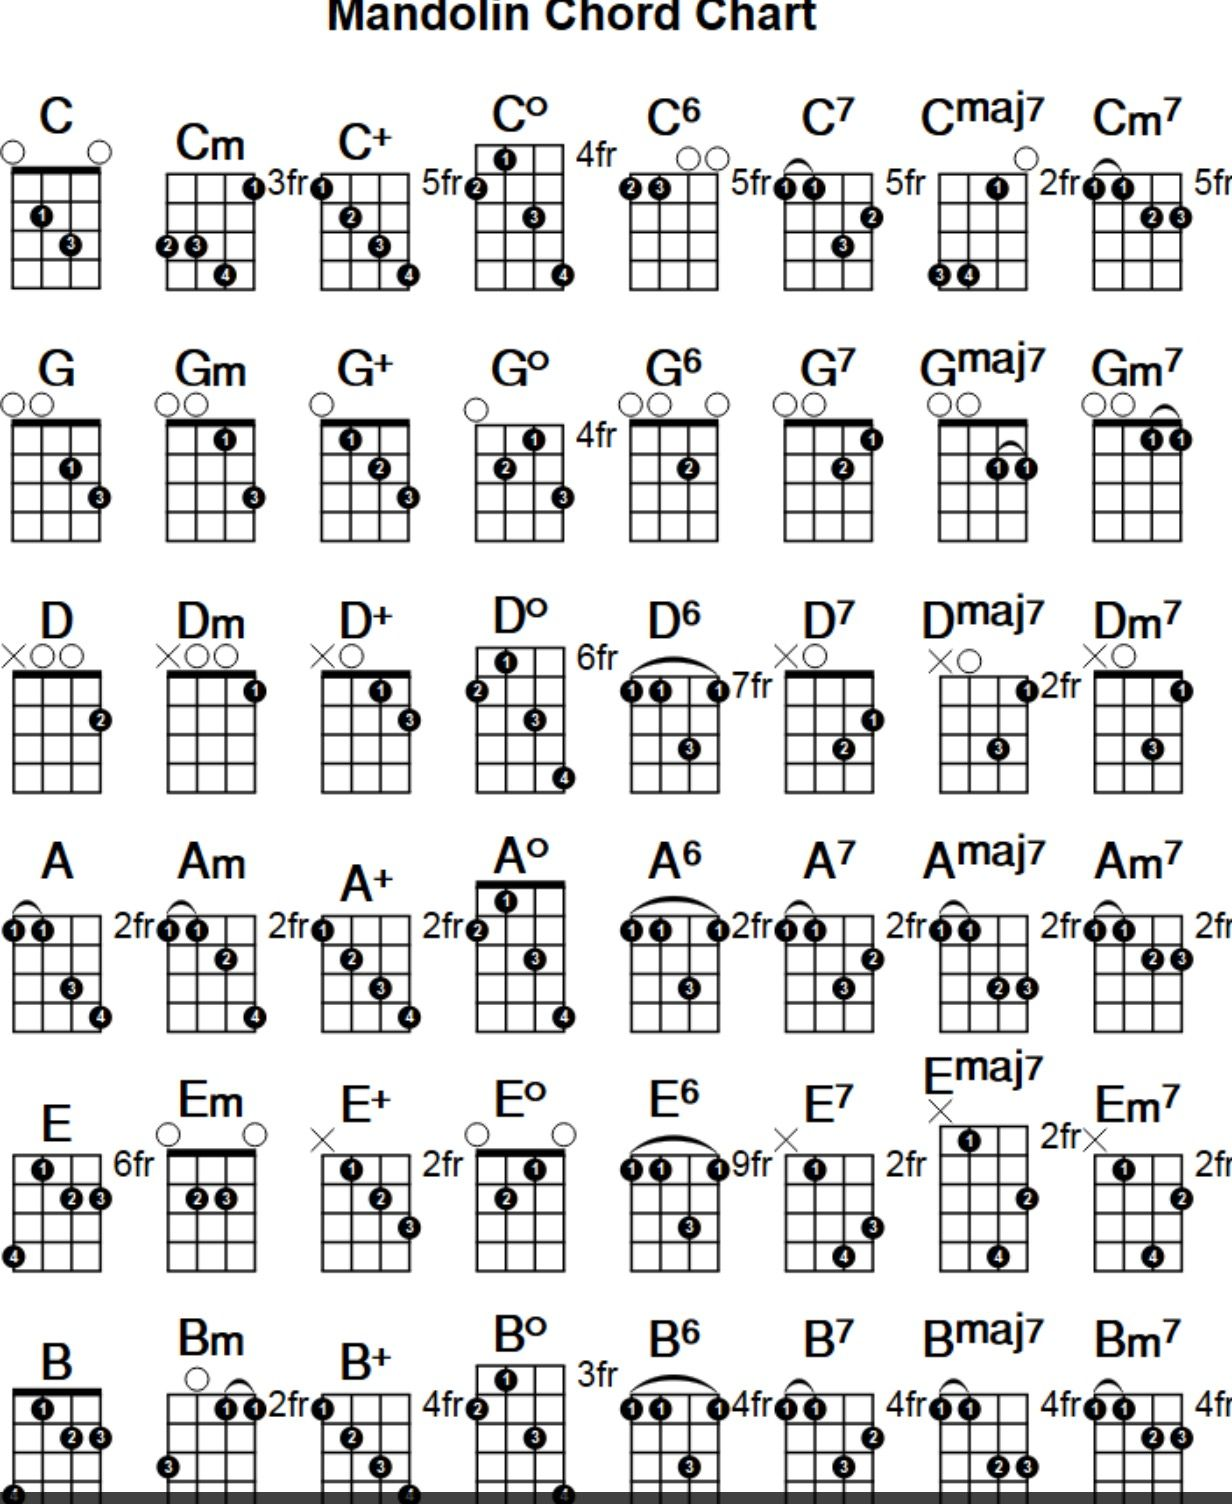 Pin by sjfn andersdttir on instrument chords pinterest see 7 best images of chord chart printable hexwebz Images